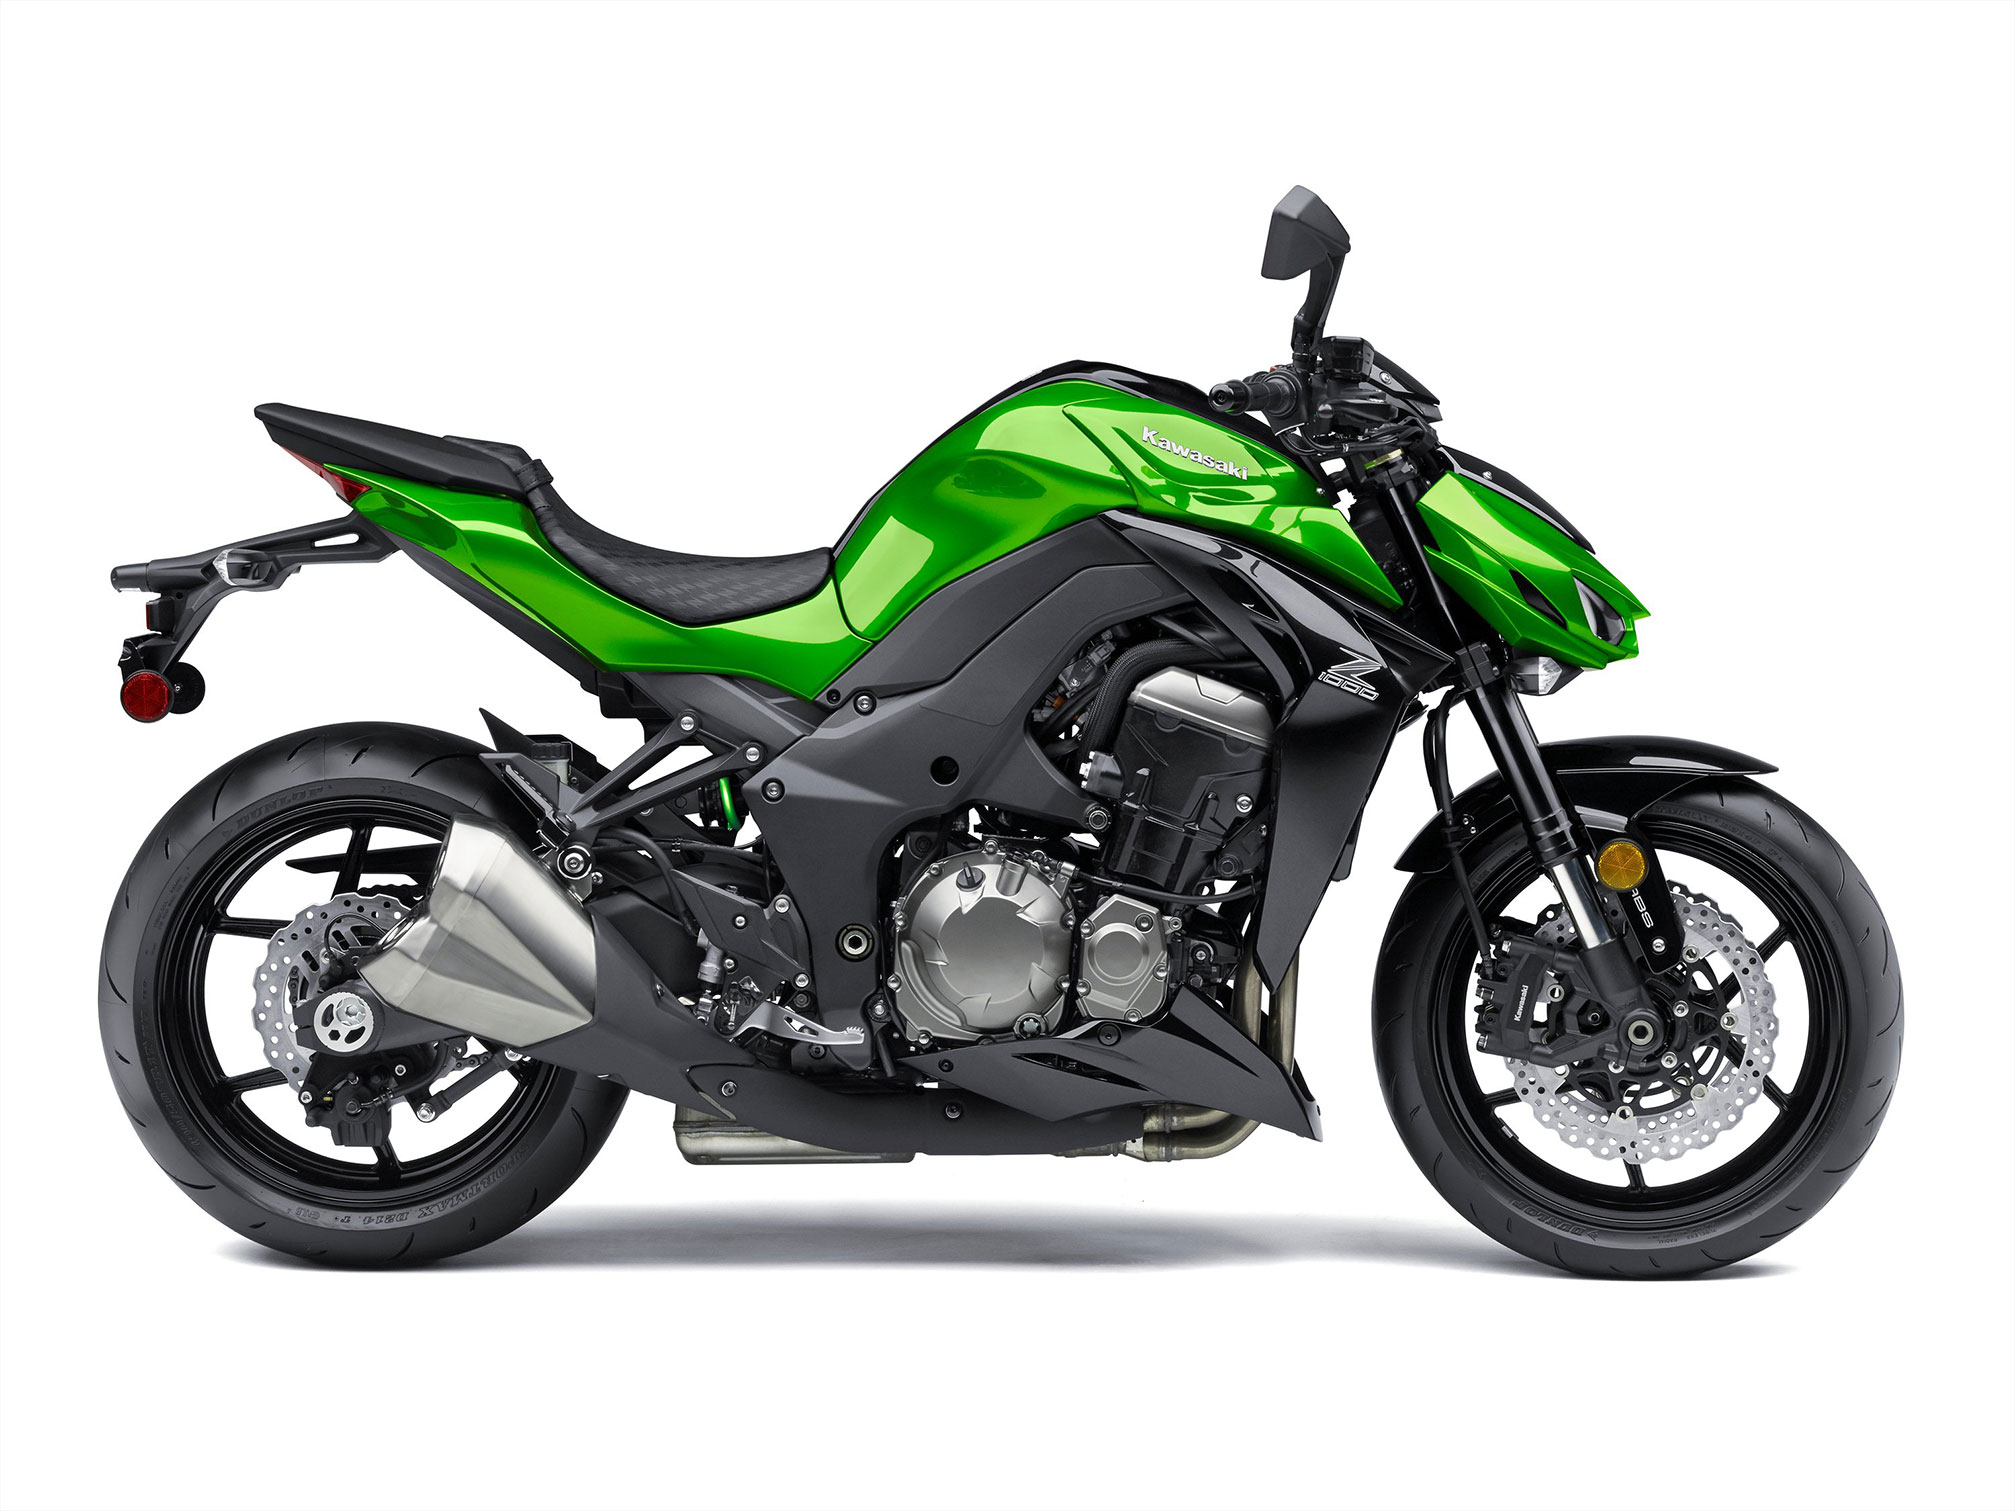 kawasaki z1000 abs specs 2014 2015 autoevolution. Black Bedroom Furniture Sets. Home Design Ideas